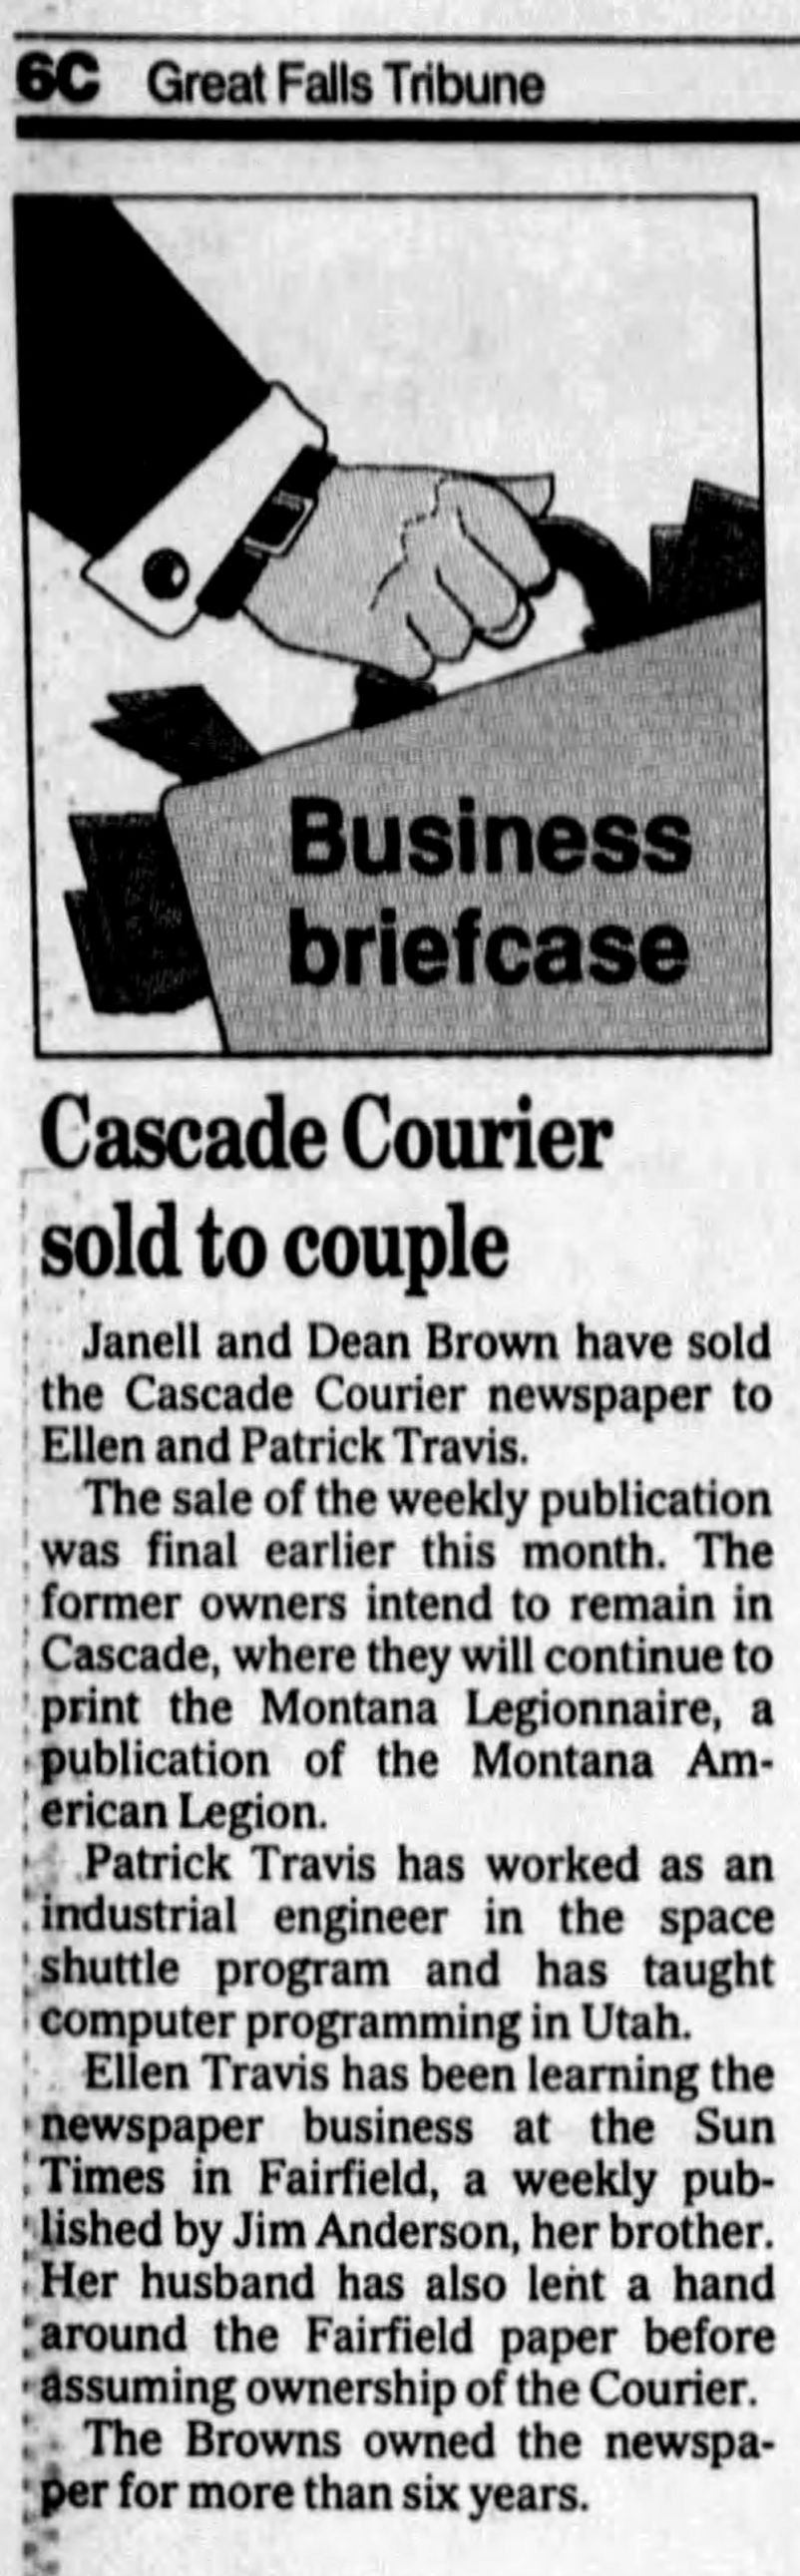 1000-Great_Falls_Tribune_Tue__Aug_25__1992_.jpg